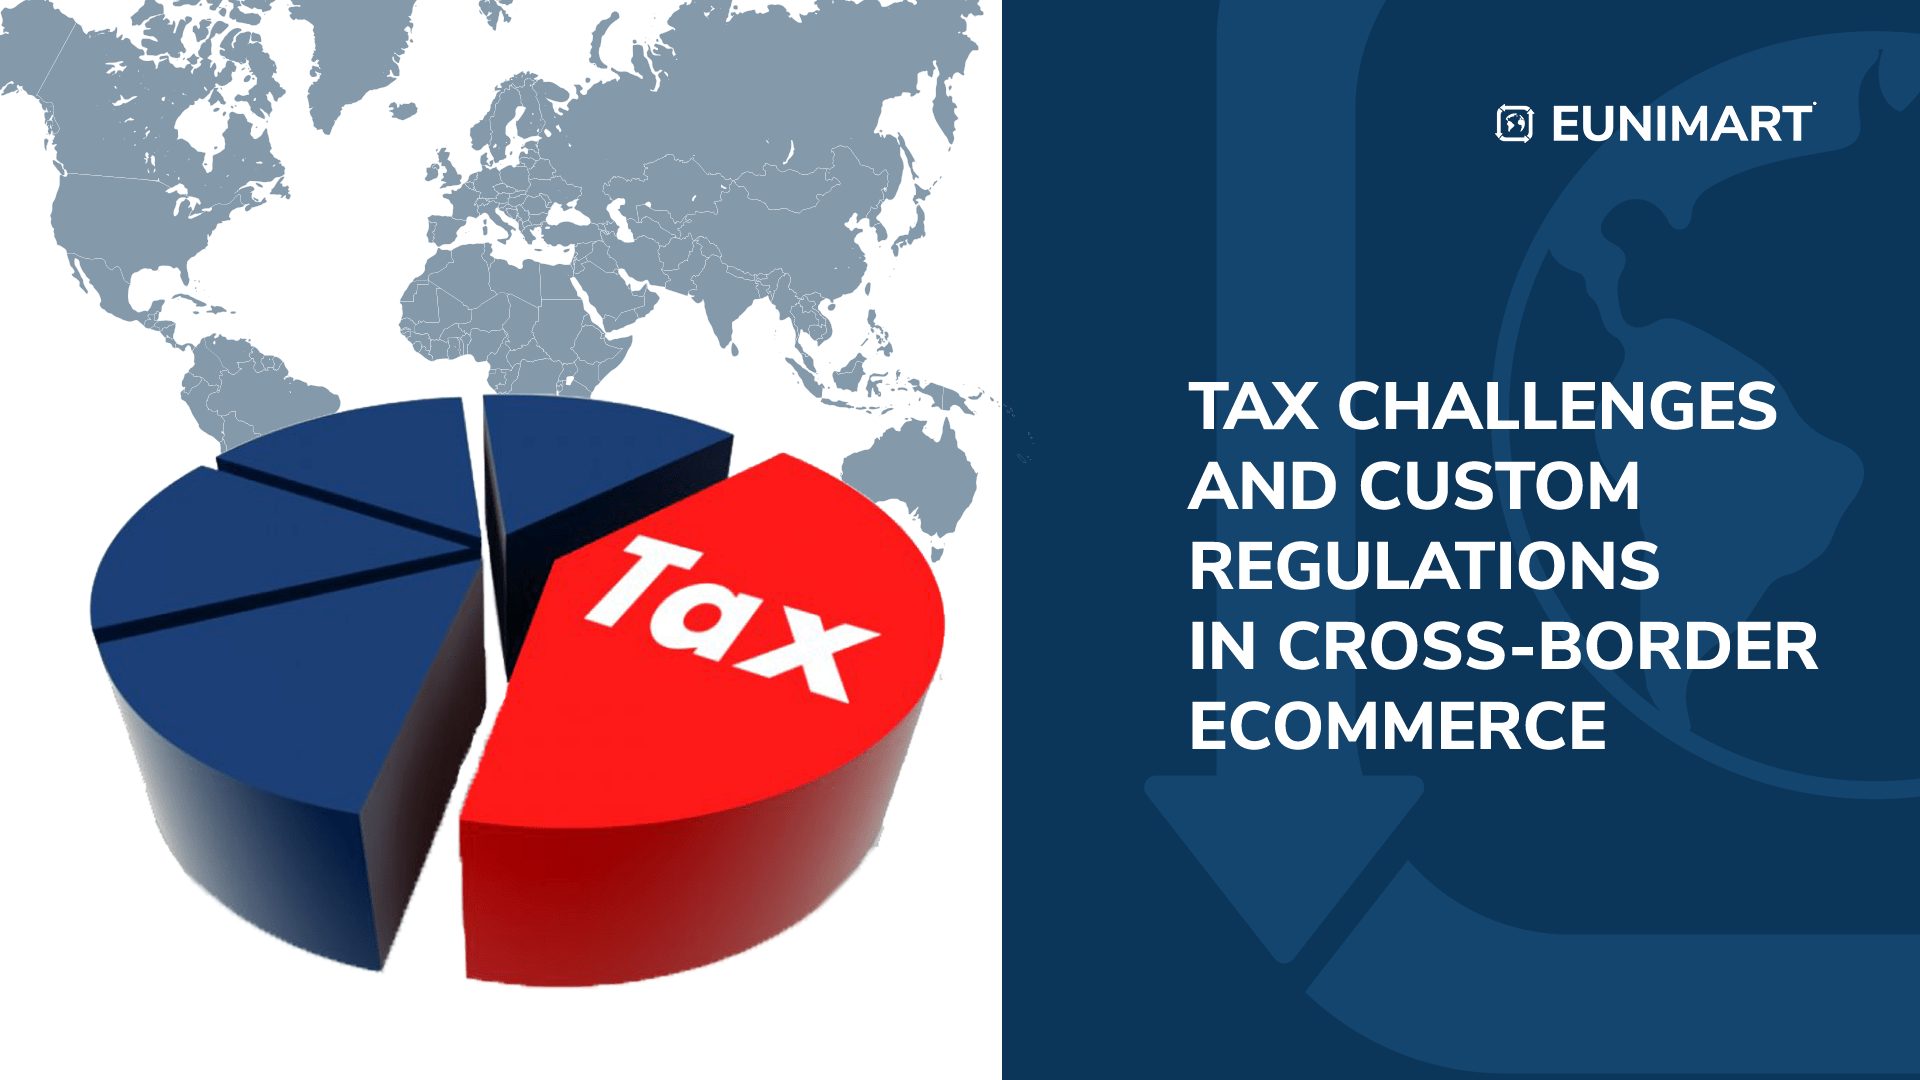 Tax Challenges and Custom Regulations in Cross-Border Ecommerce